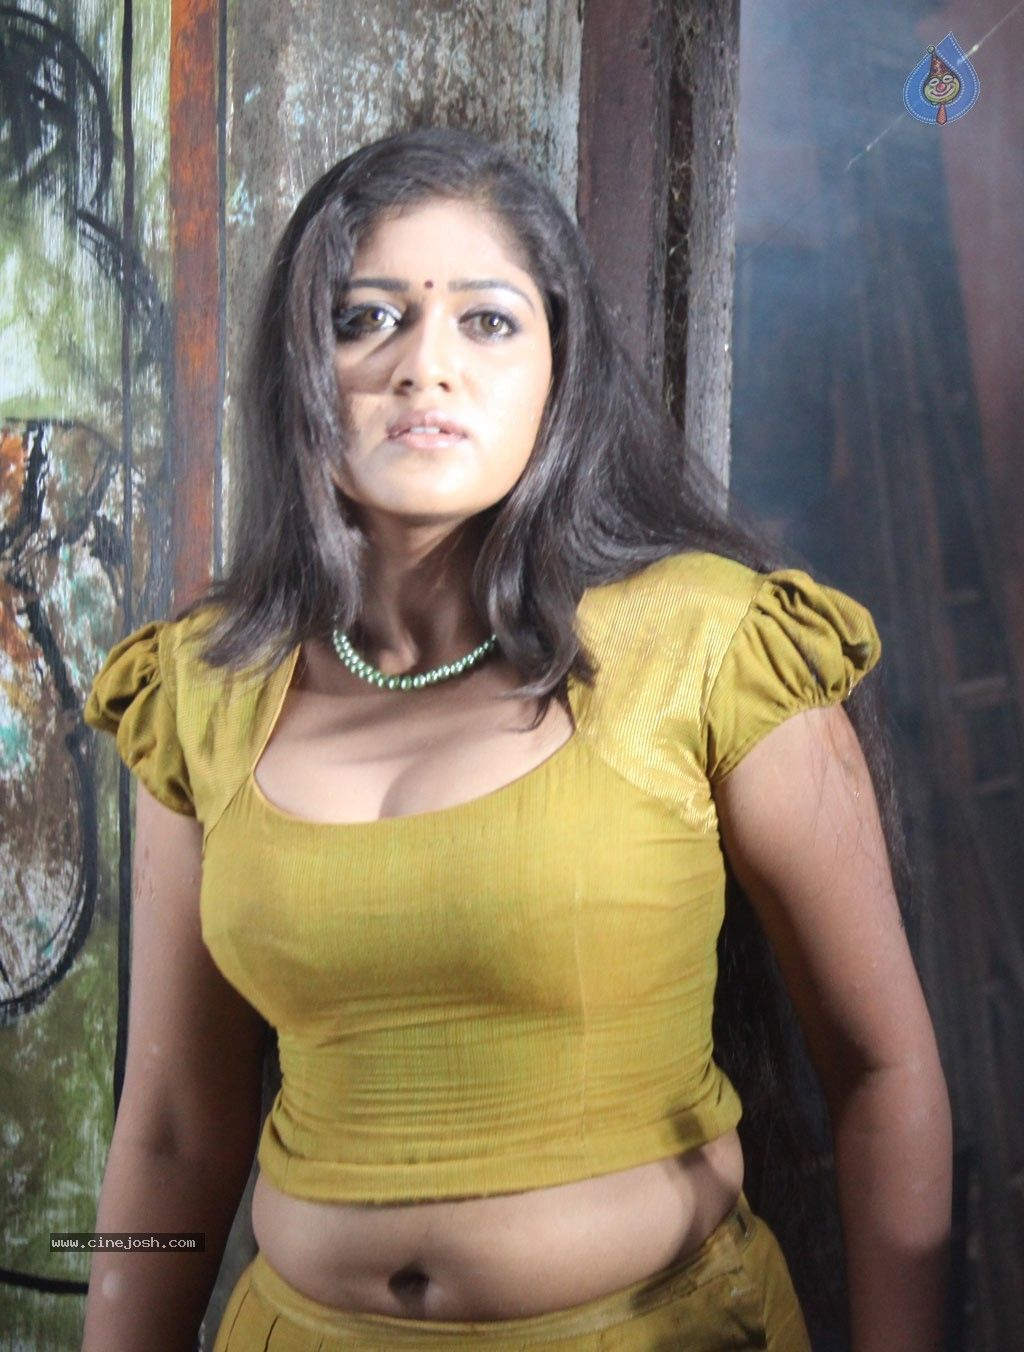 Malayalam Actress Nude Pics Complete jakkamma tamil movie hot stills - | indian hottest | pinterest